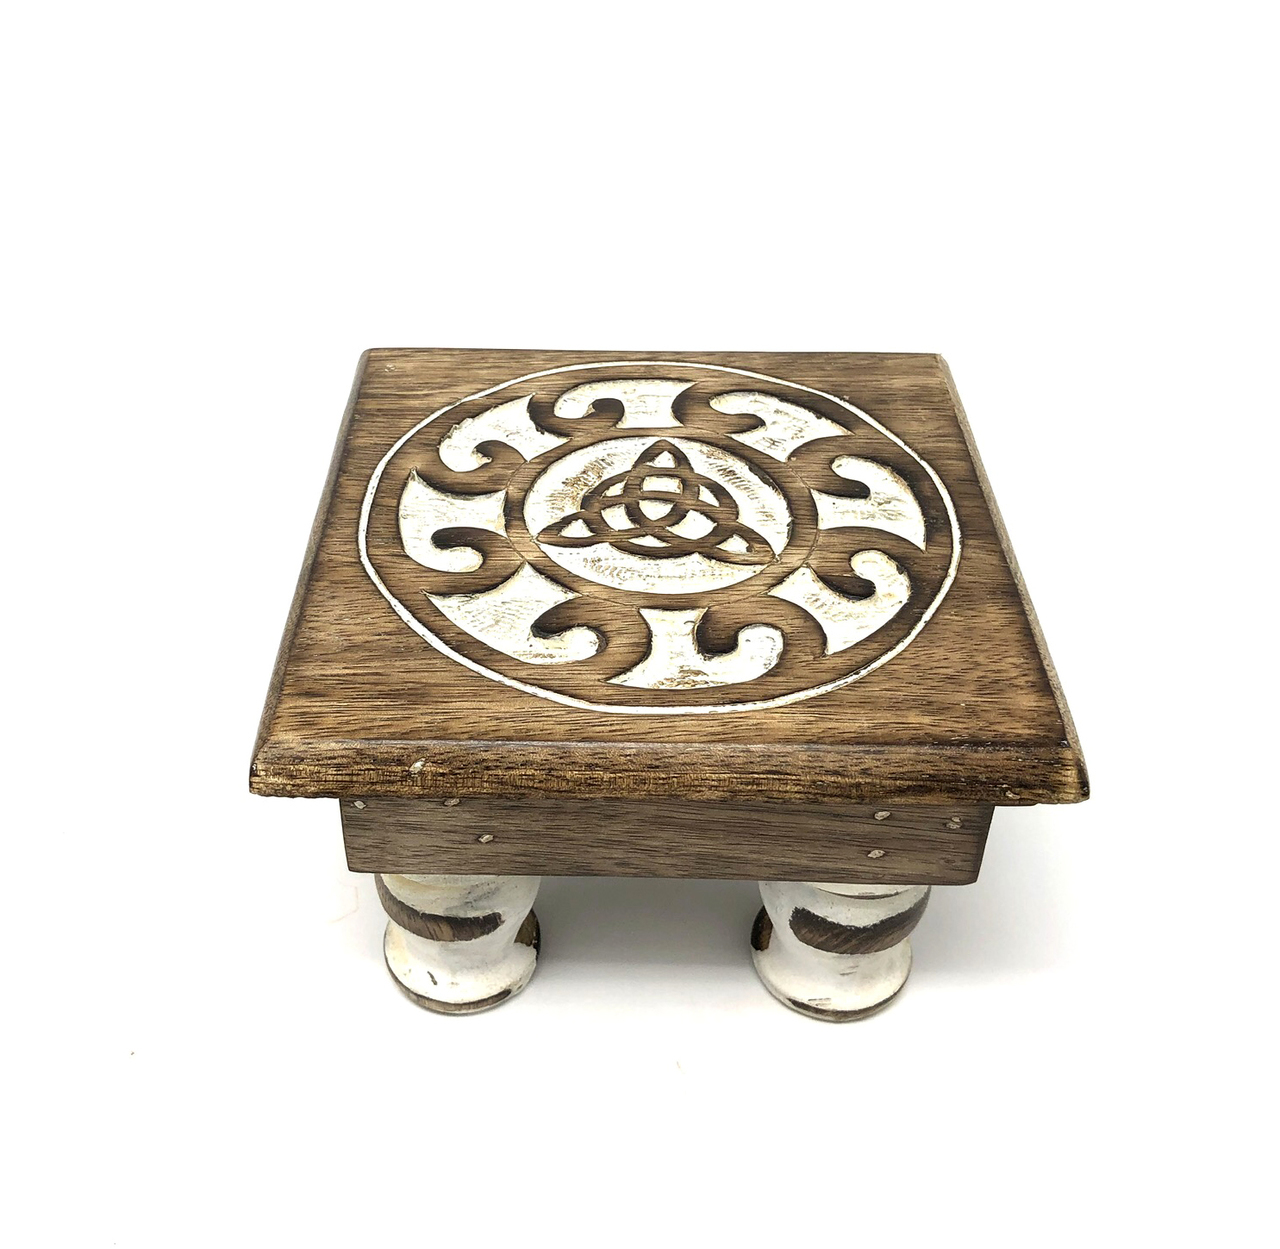 Wood Altar table Triquetra 6x 4 $24.99